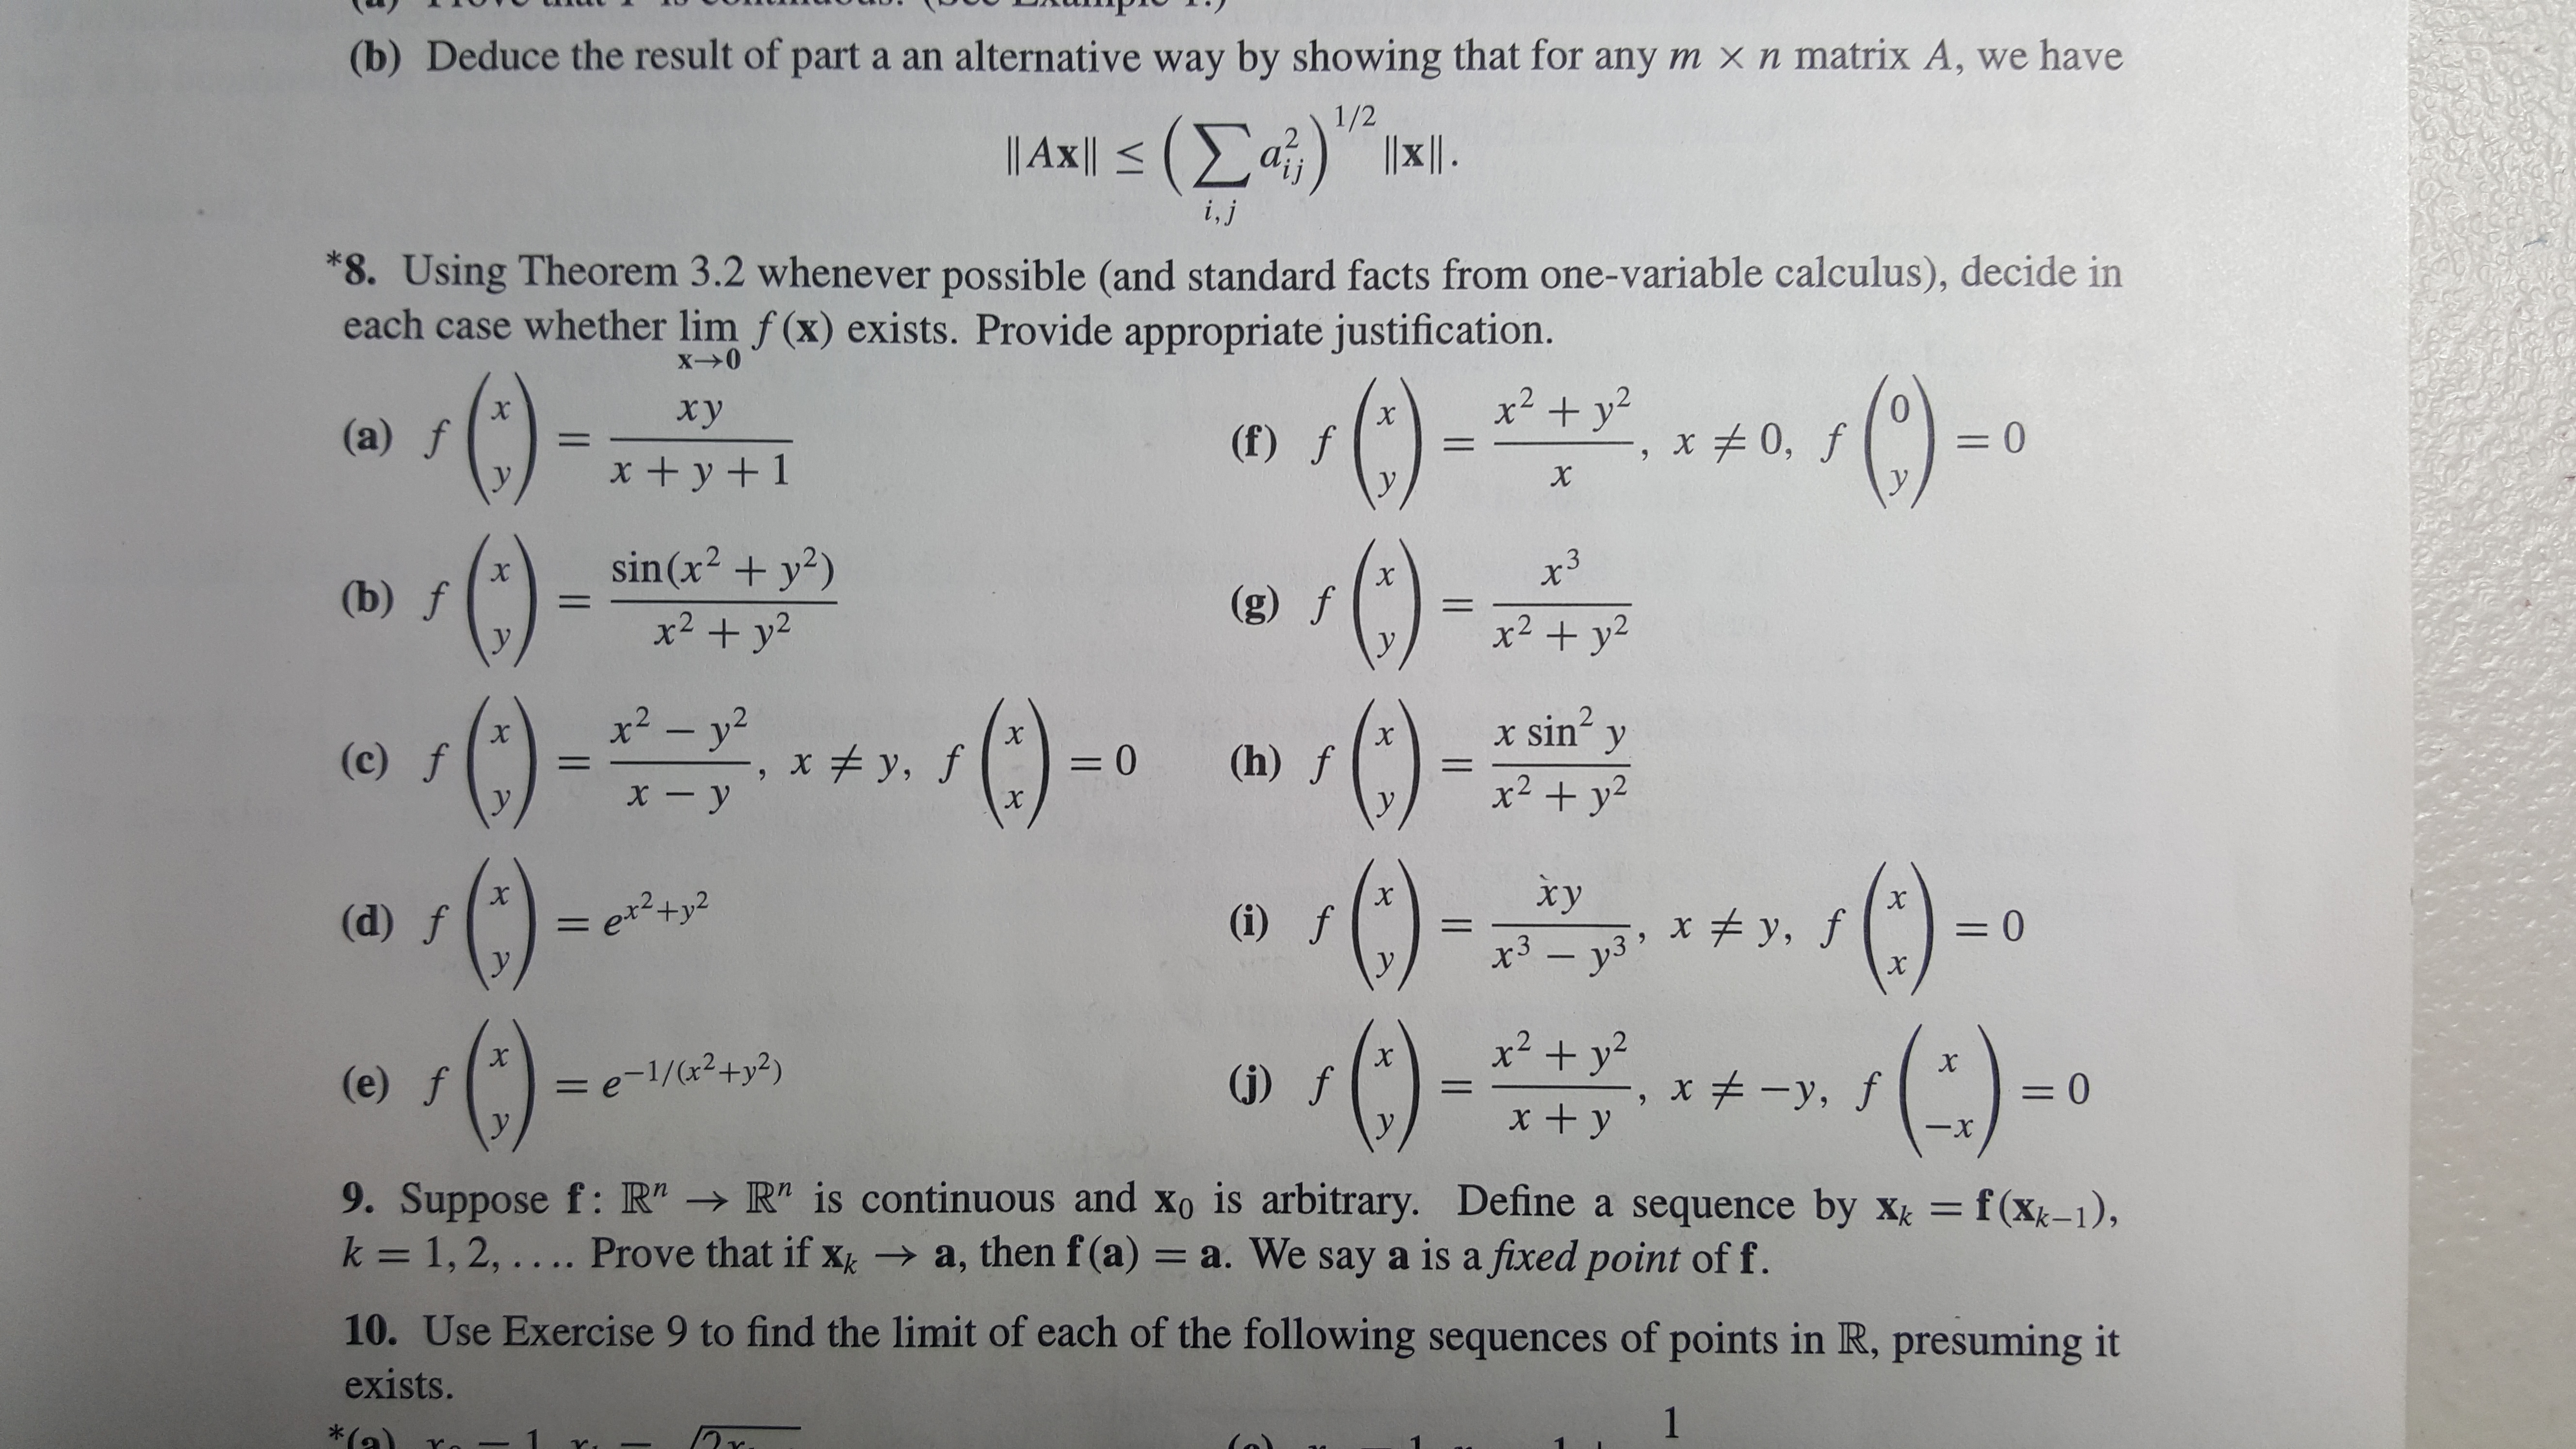 """(b) Deduce the result of part a an alternative way by showing that for any m xn matrix A, we have 1/2 